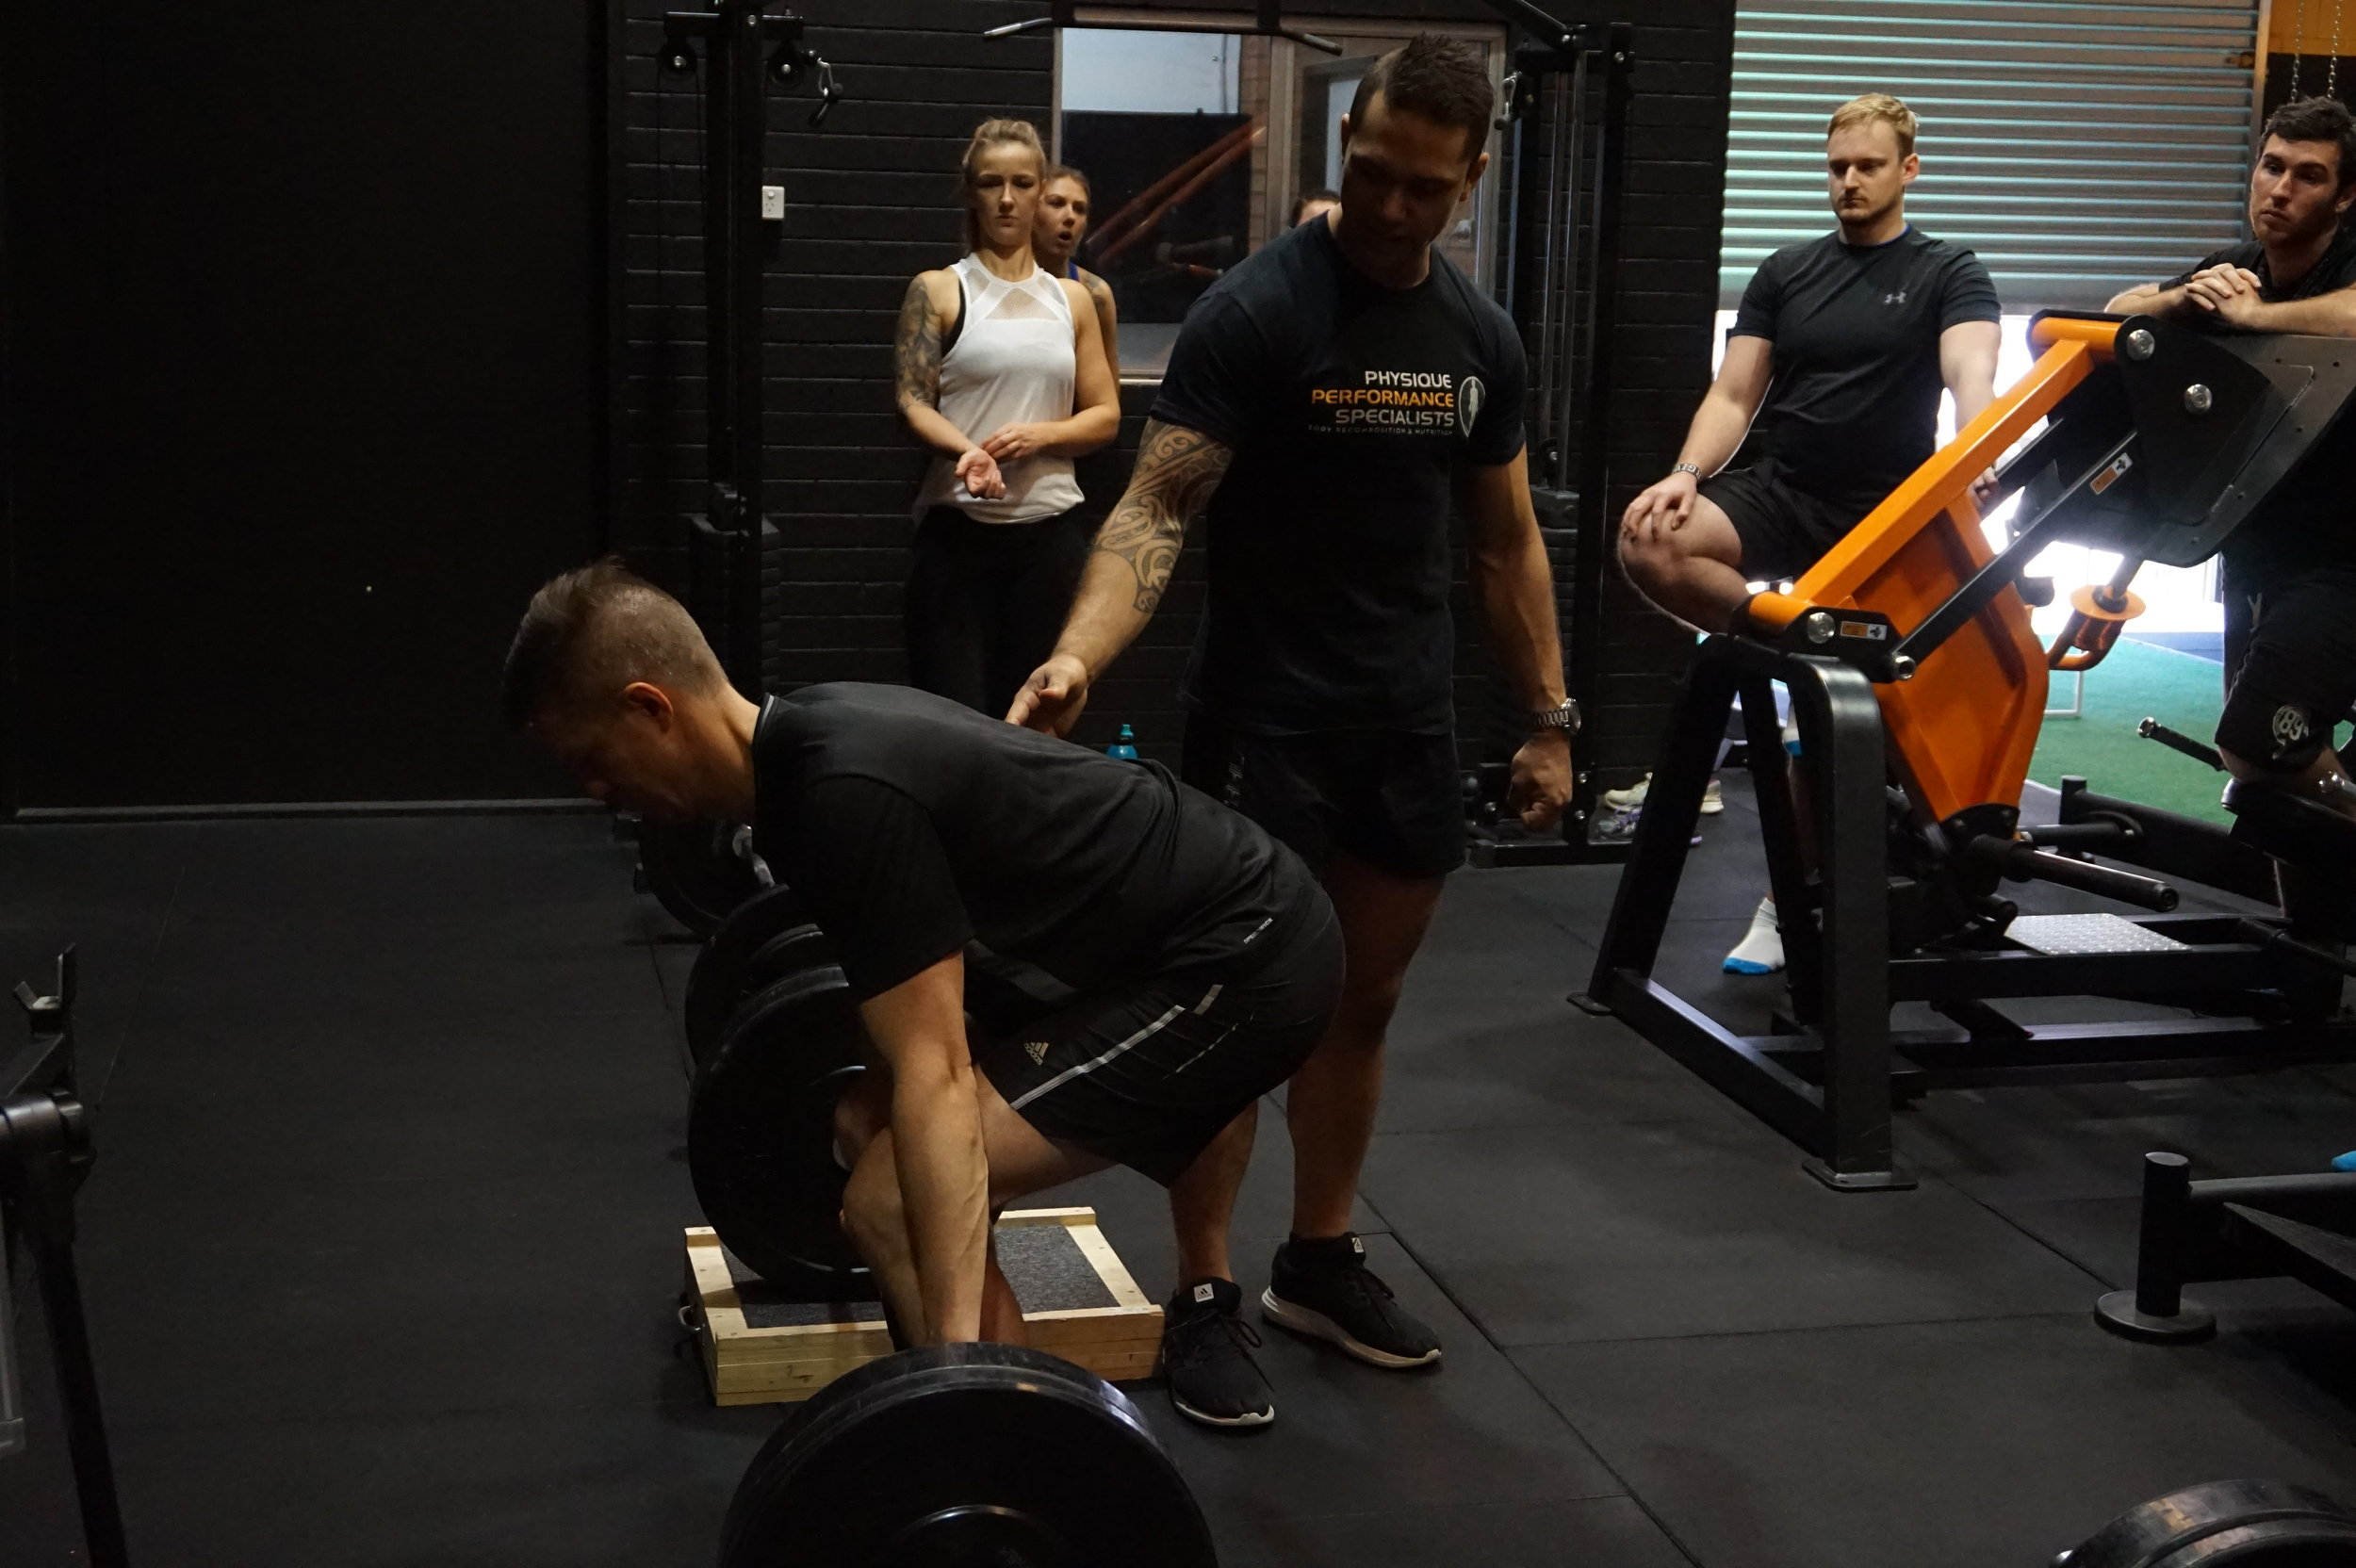 We regularly hold seminars and lifting workshops within our private facilities (non-members welcome). Click the button below to get in touch and learn more...